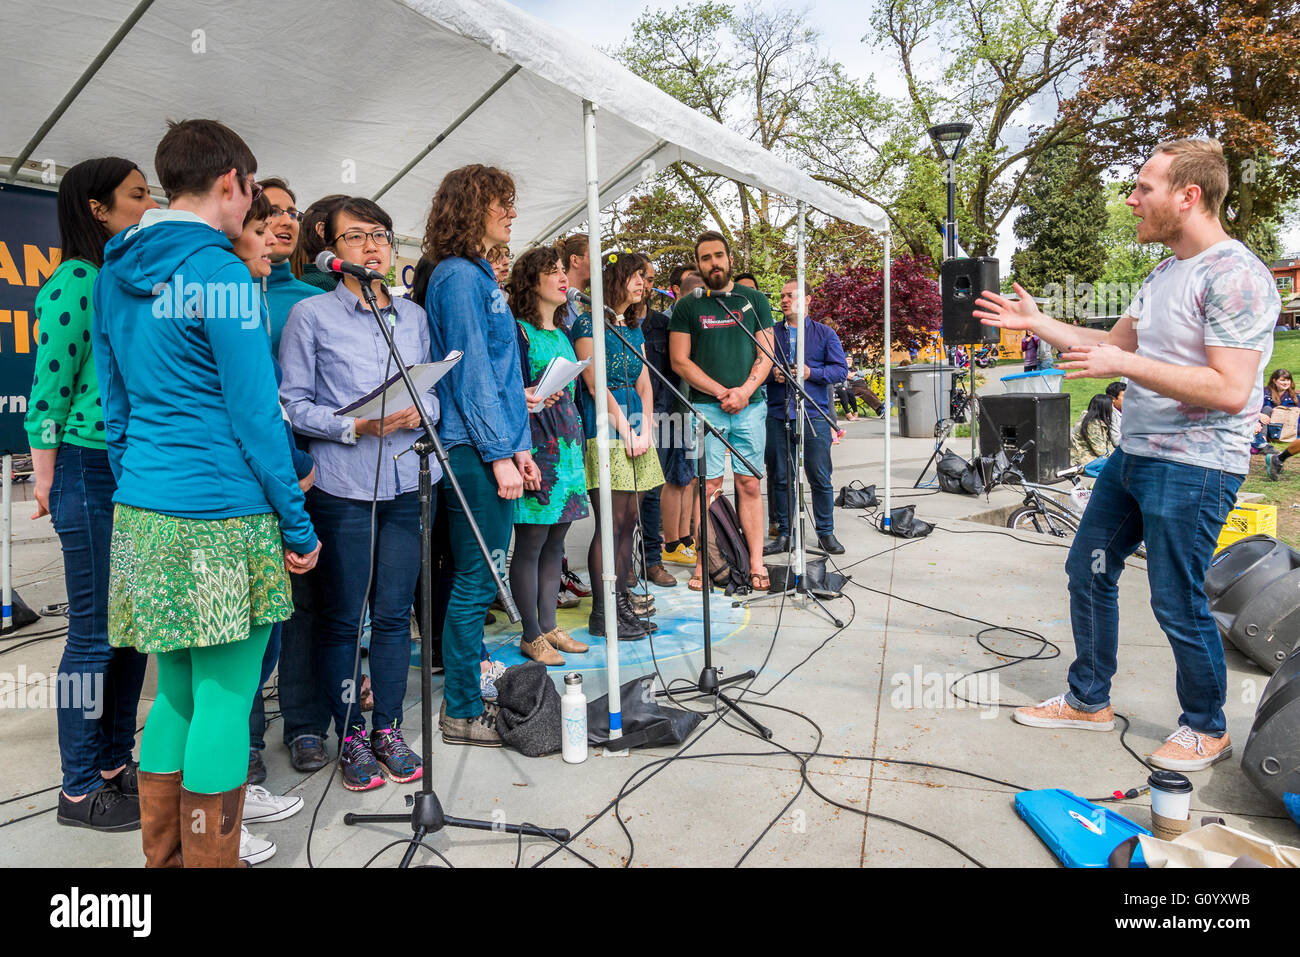 Choir performance, Earth Day, Vancouver, British Columbia, Canada - Stock Image